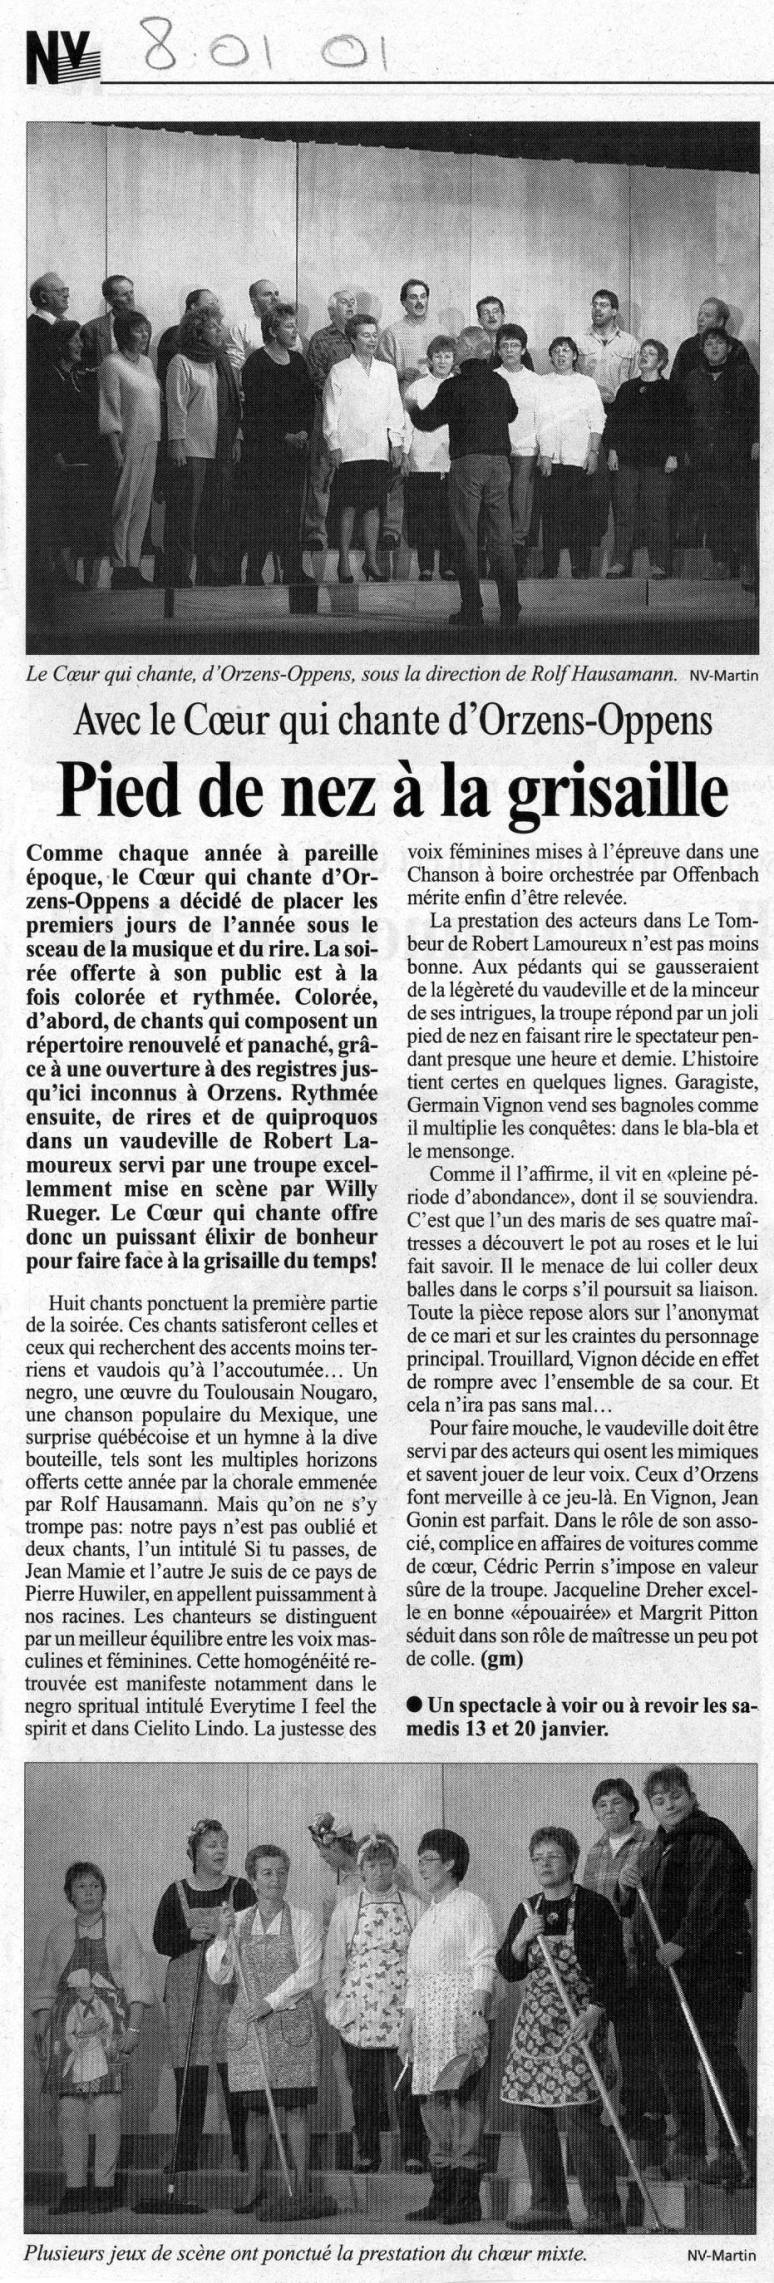 JOURNAL NV 08 janvier 2001 LE TOMBEUR Orzens